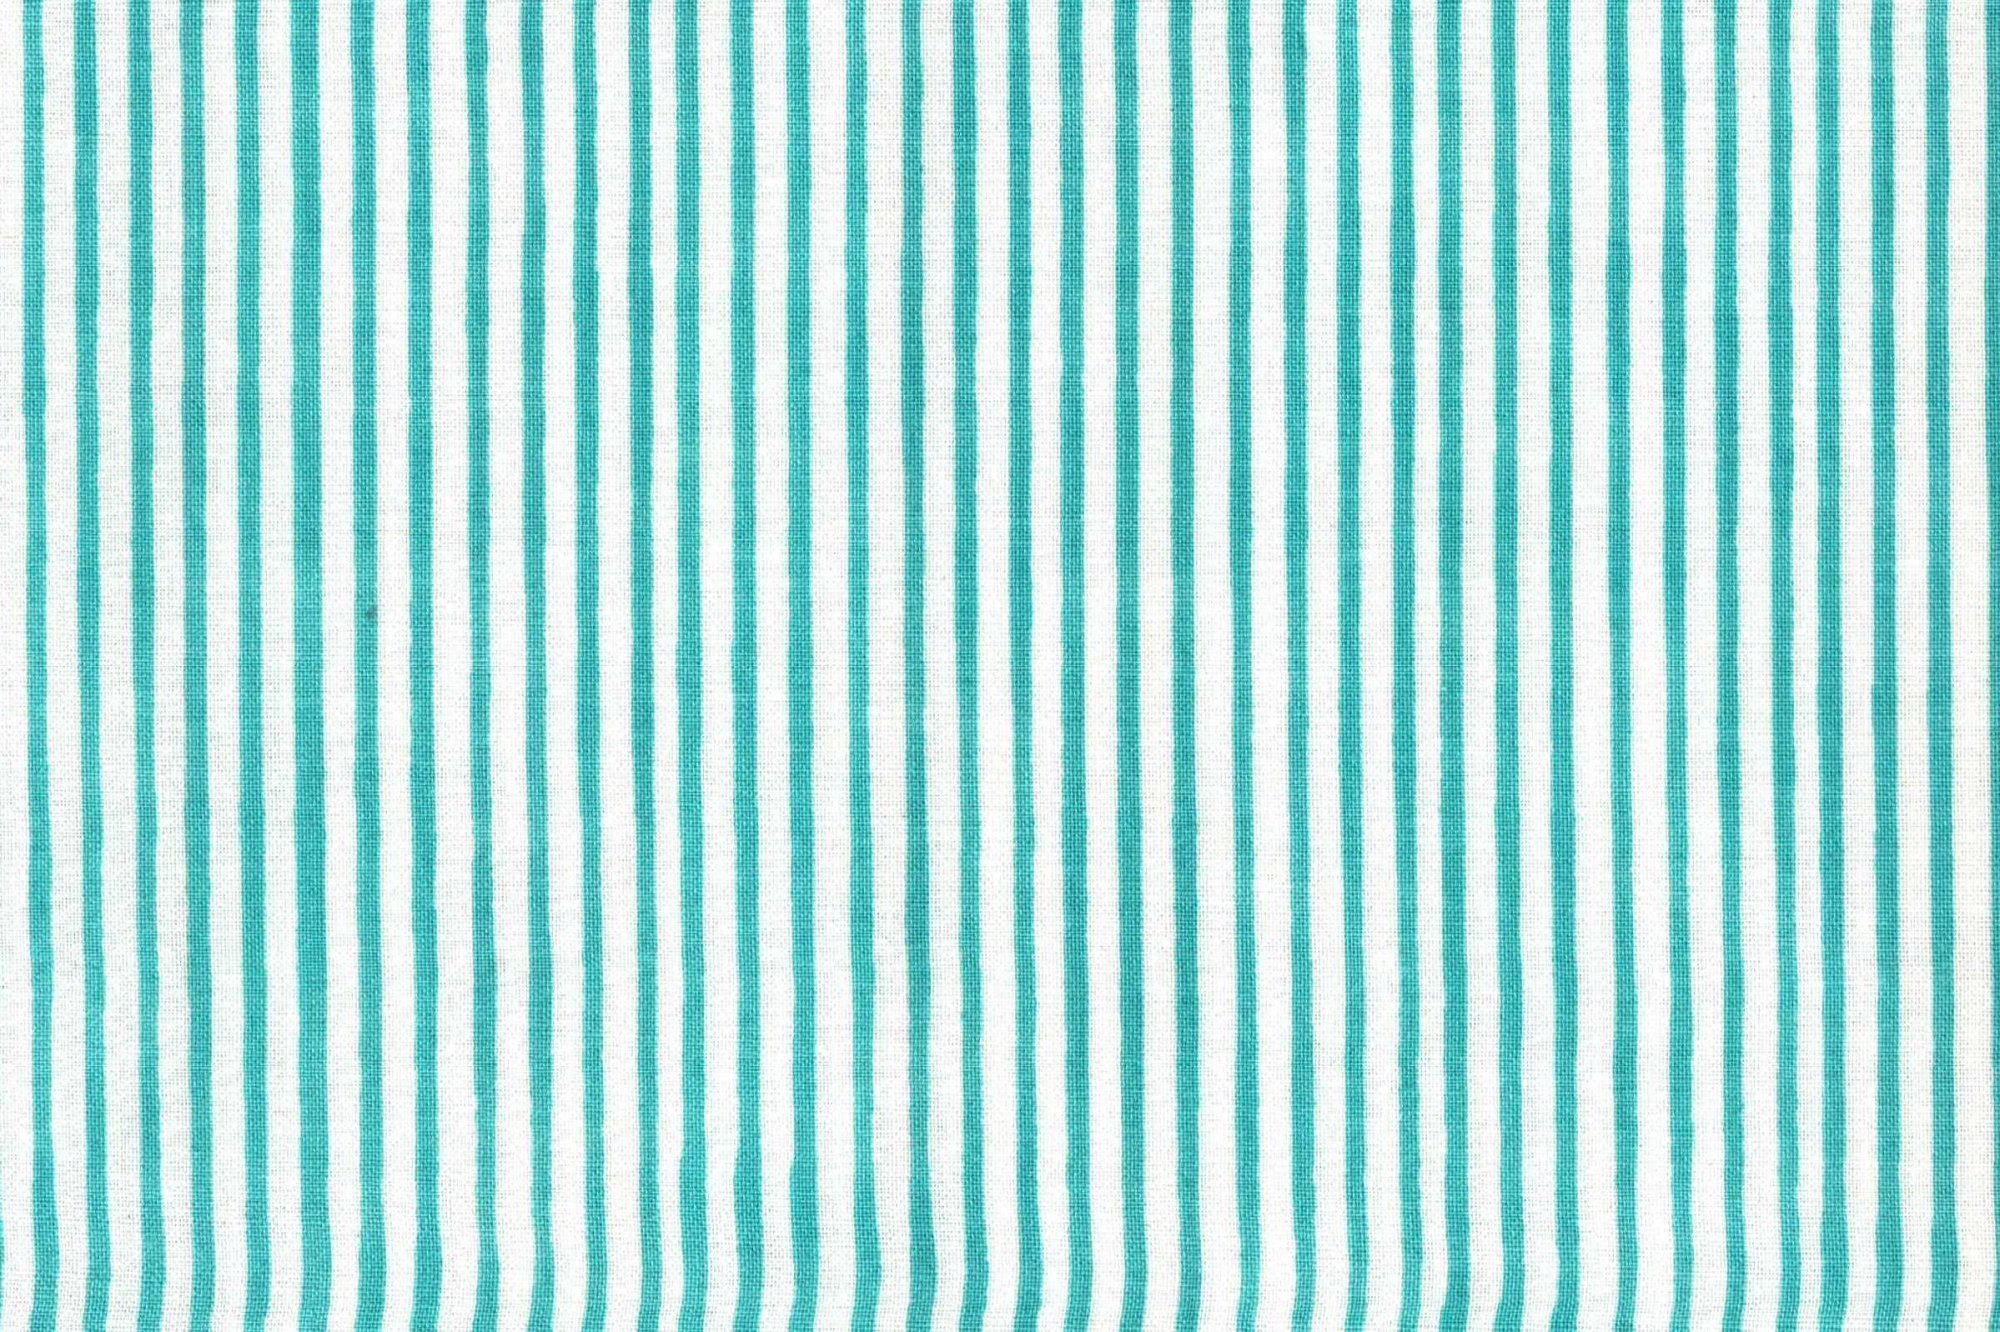 LORALIE DESIGNS 691-838-B LAZY STRIPE TURQUOISE